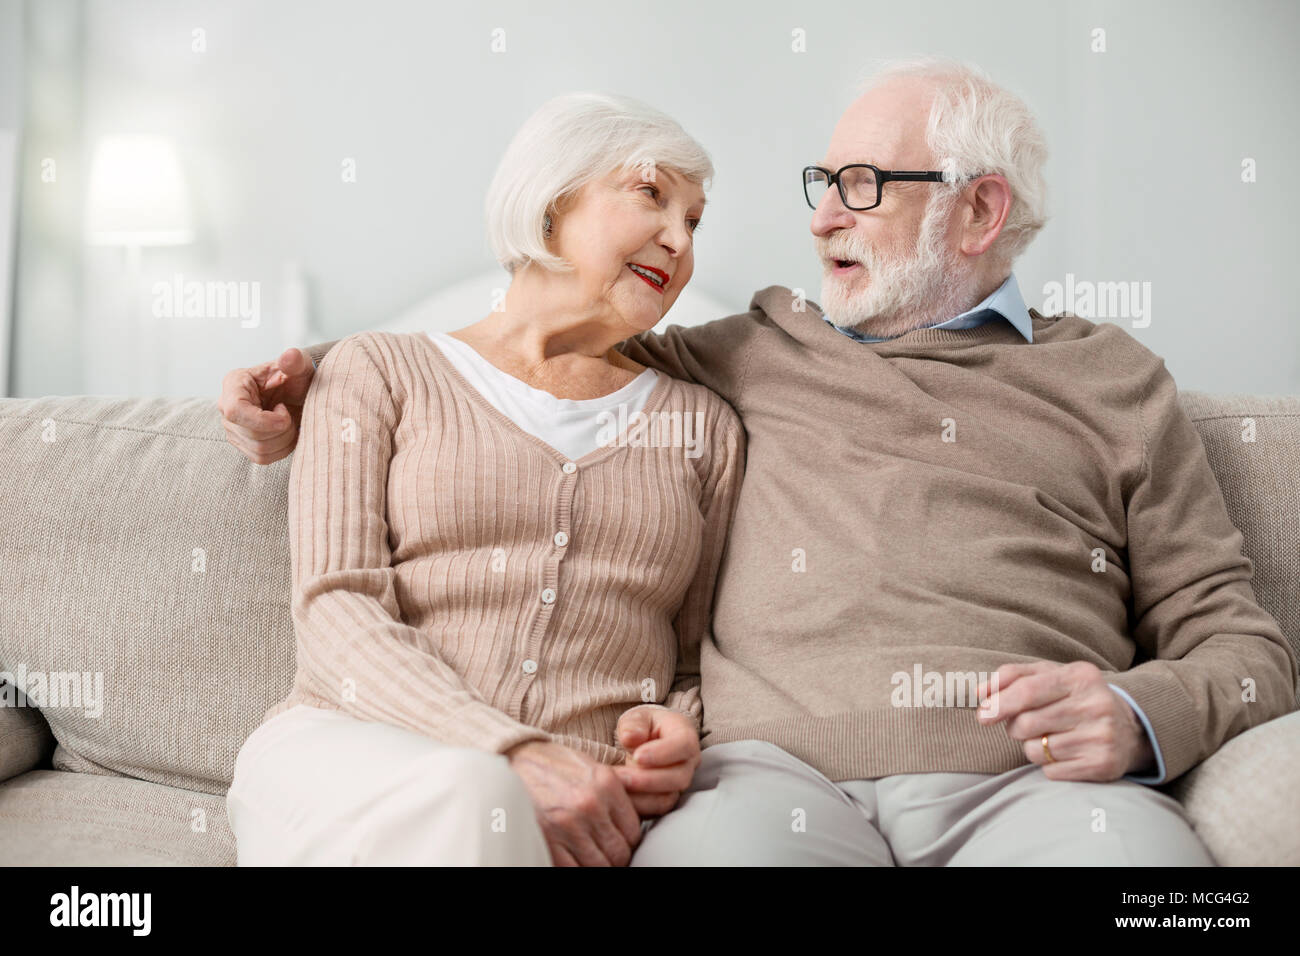 Positive aged man talking to his wife - Stock Image